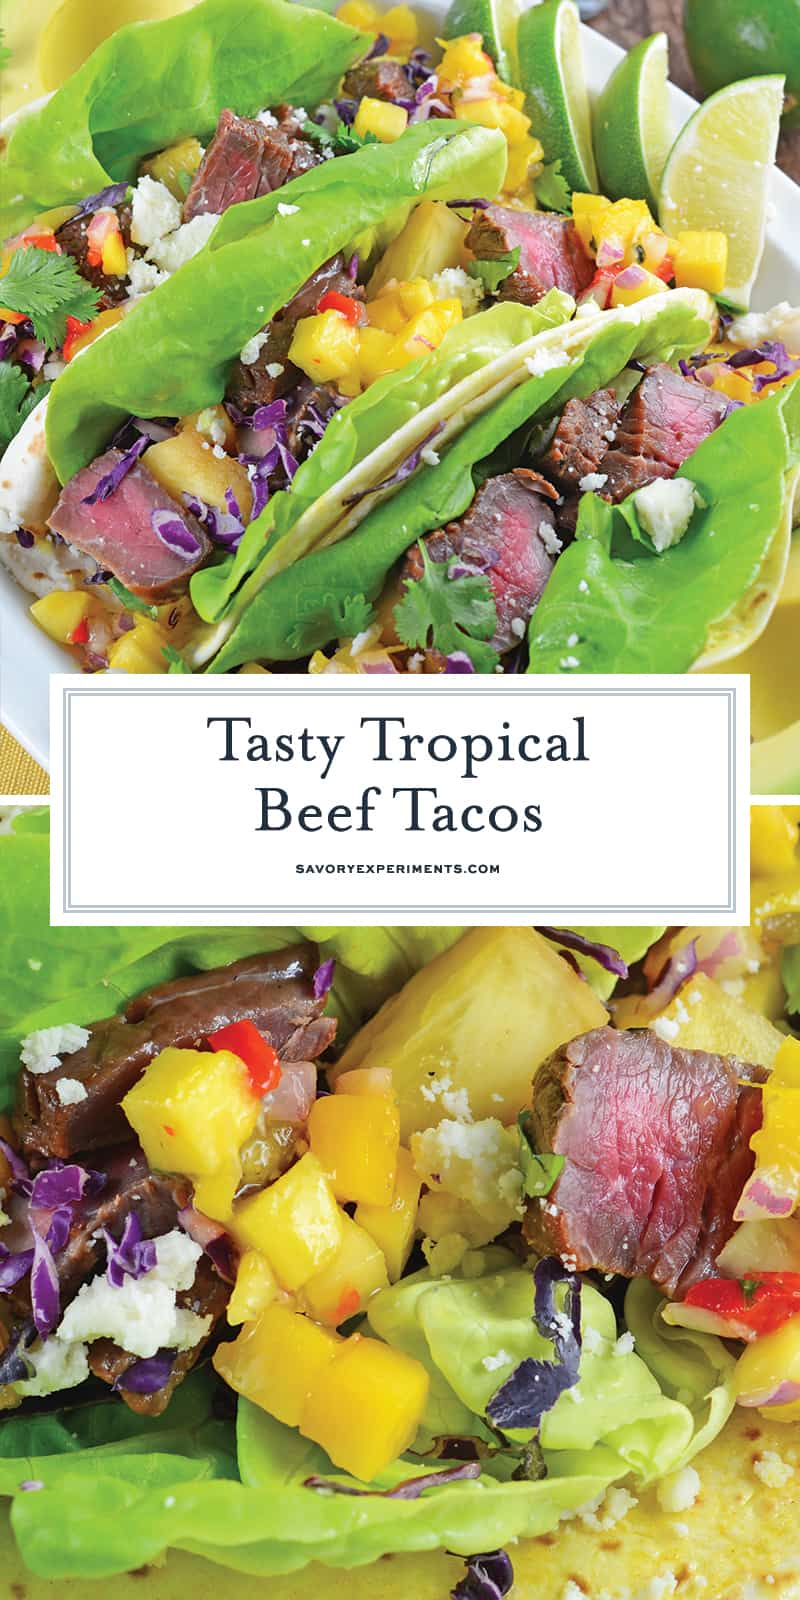 Tropical Beef Tacos use seasoned strip steak with mango salsa and queso fresco. Plus one secret for out-of-this-world tacos! #softtacos #beeftacos #streettacos www.savoryexperiments.com